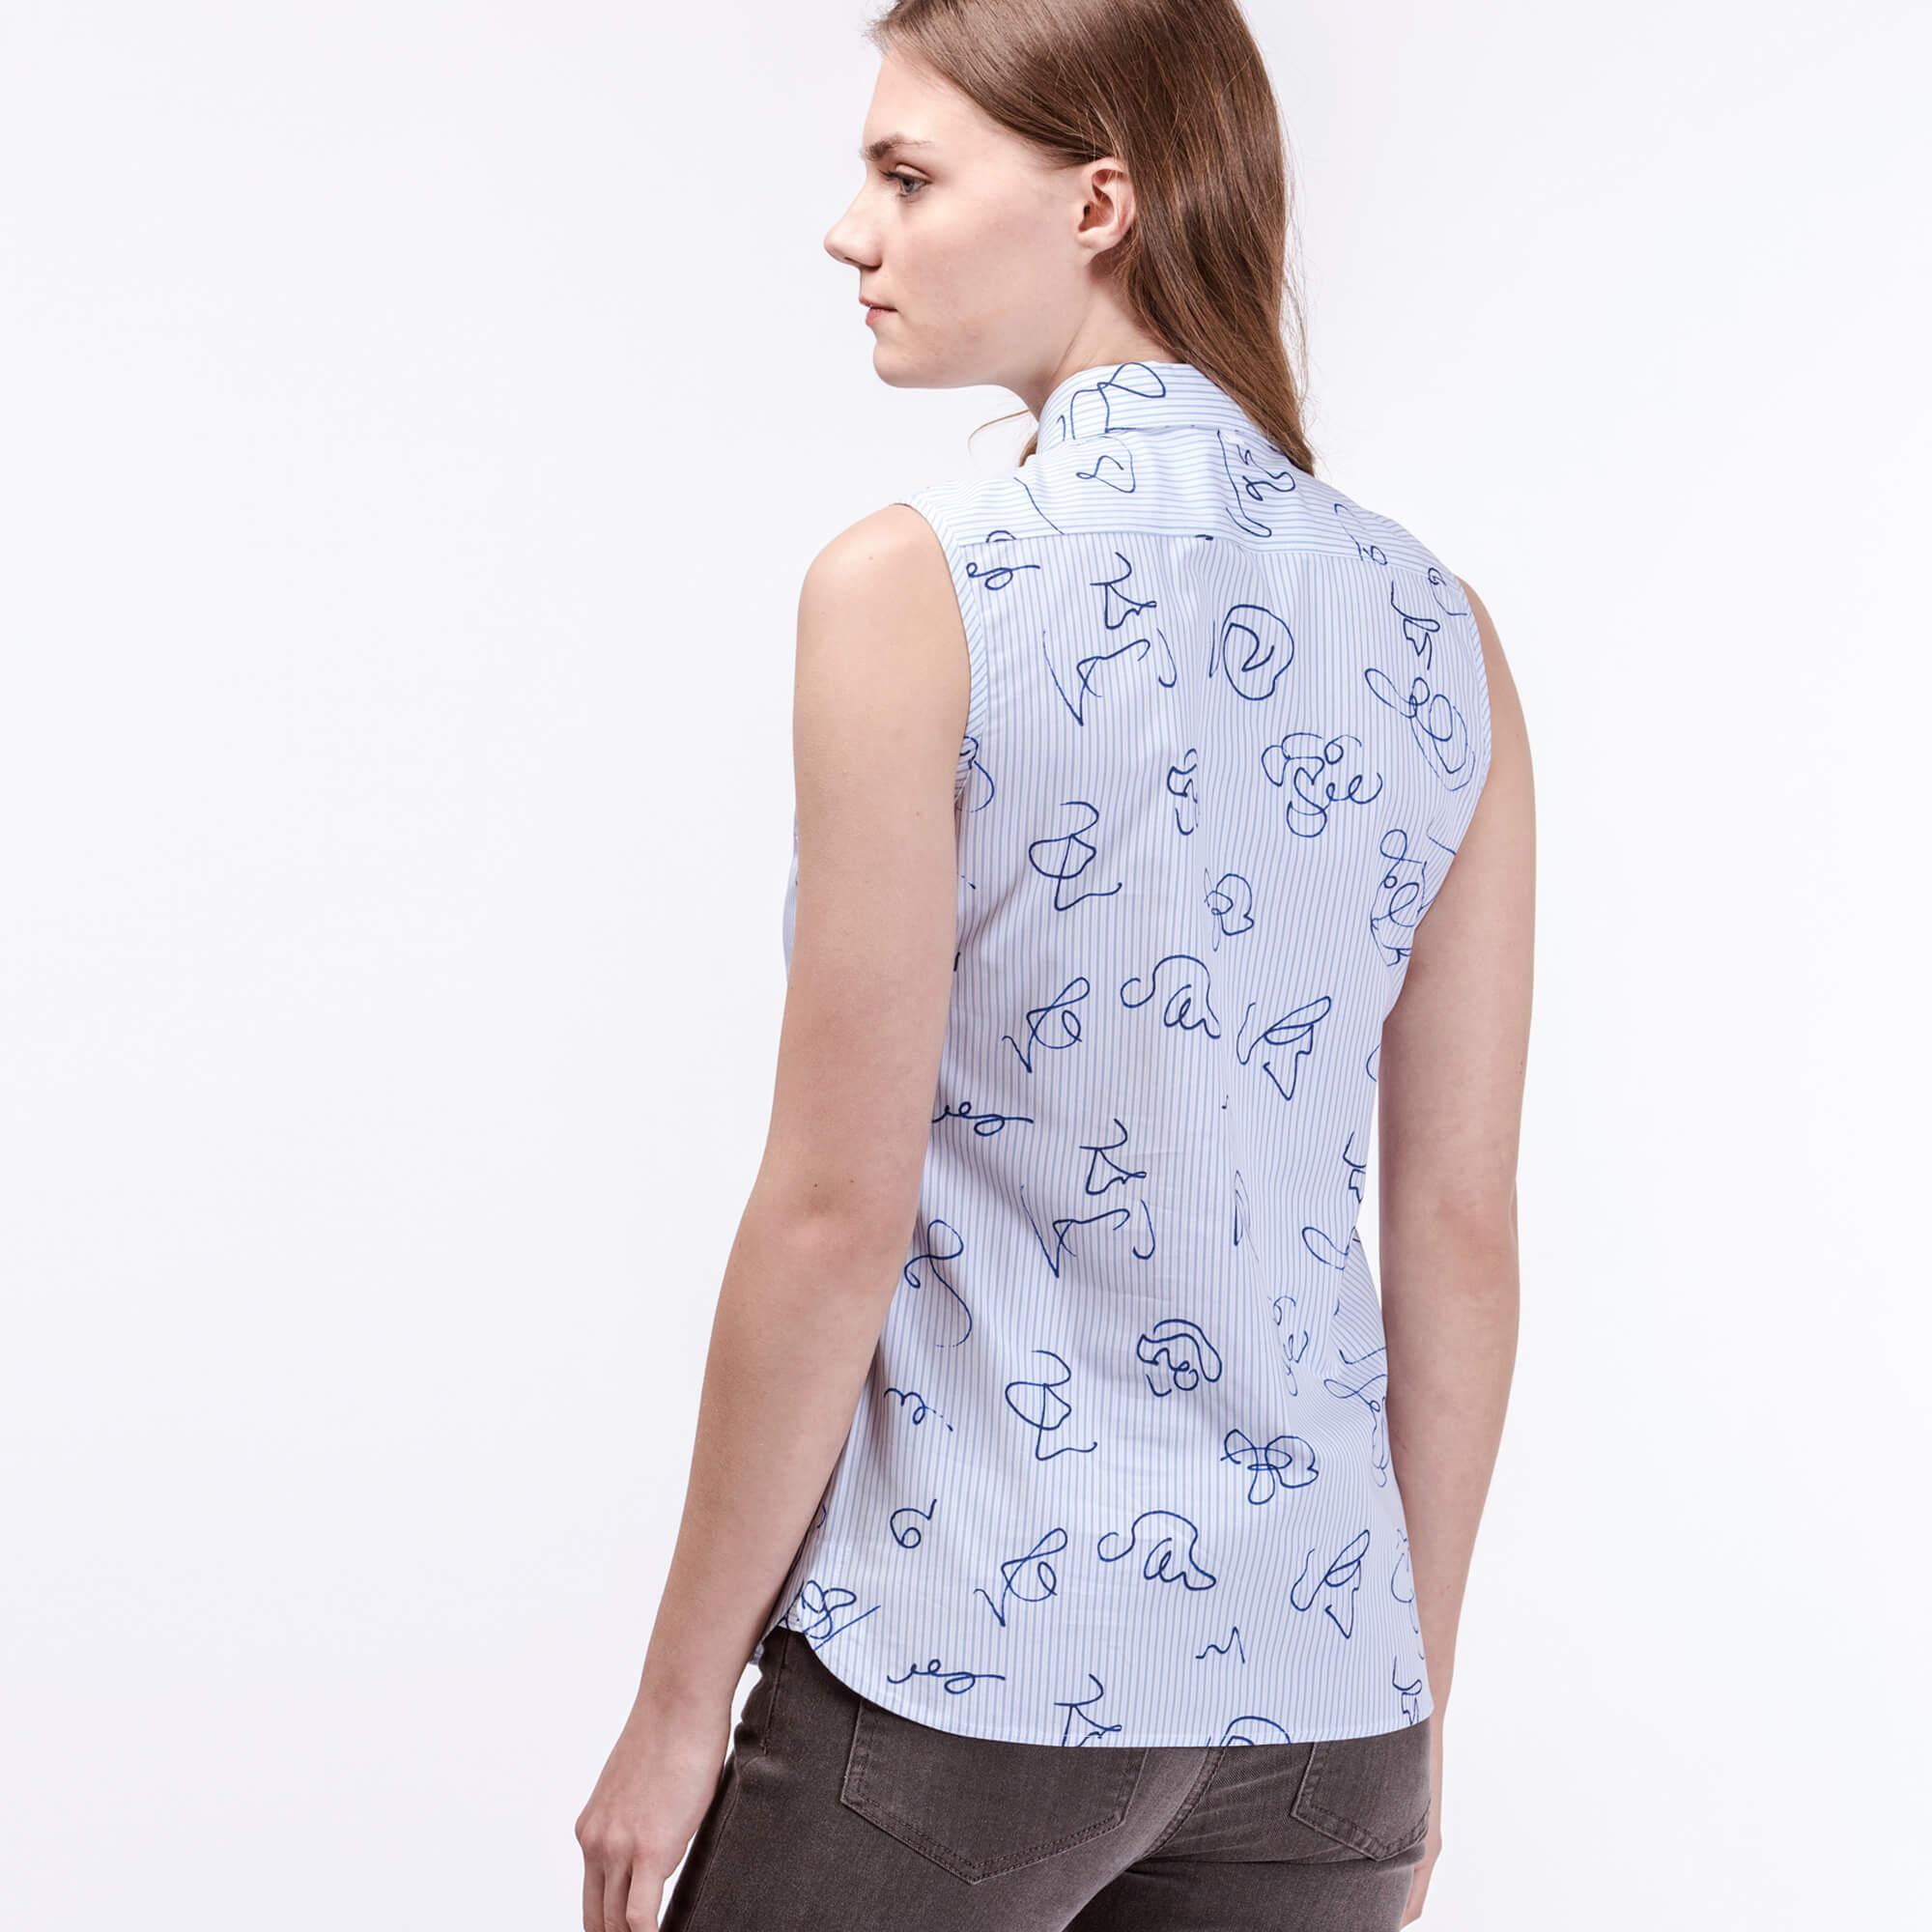 Lacoste L!VE Women's Shirt